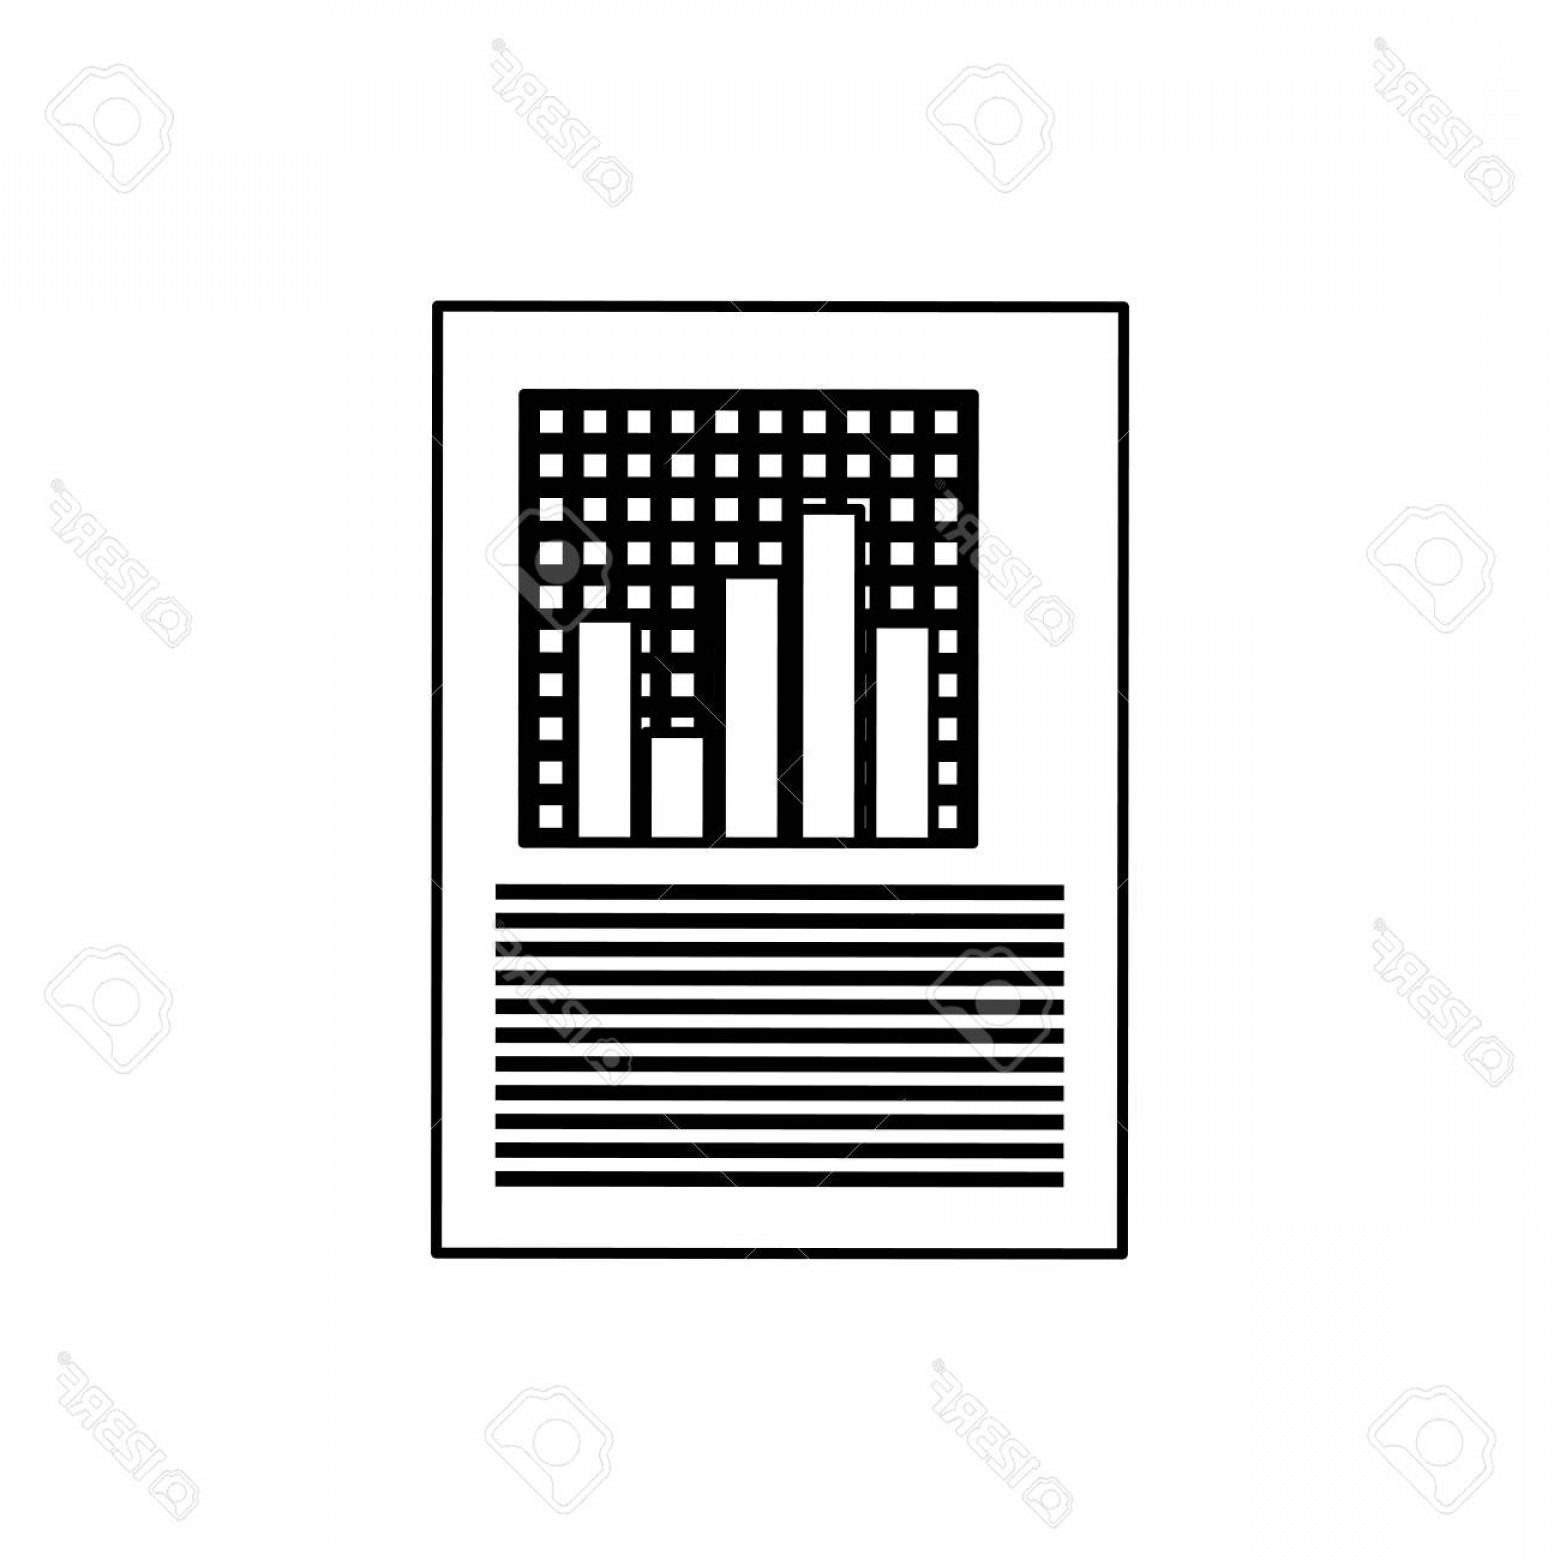 Report Icon Vector: Photostock Vector Statistics Chart Report Icon Vector Illustration Graphic Design